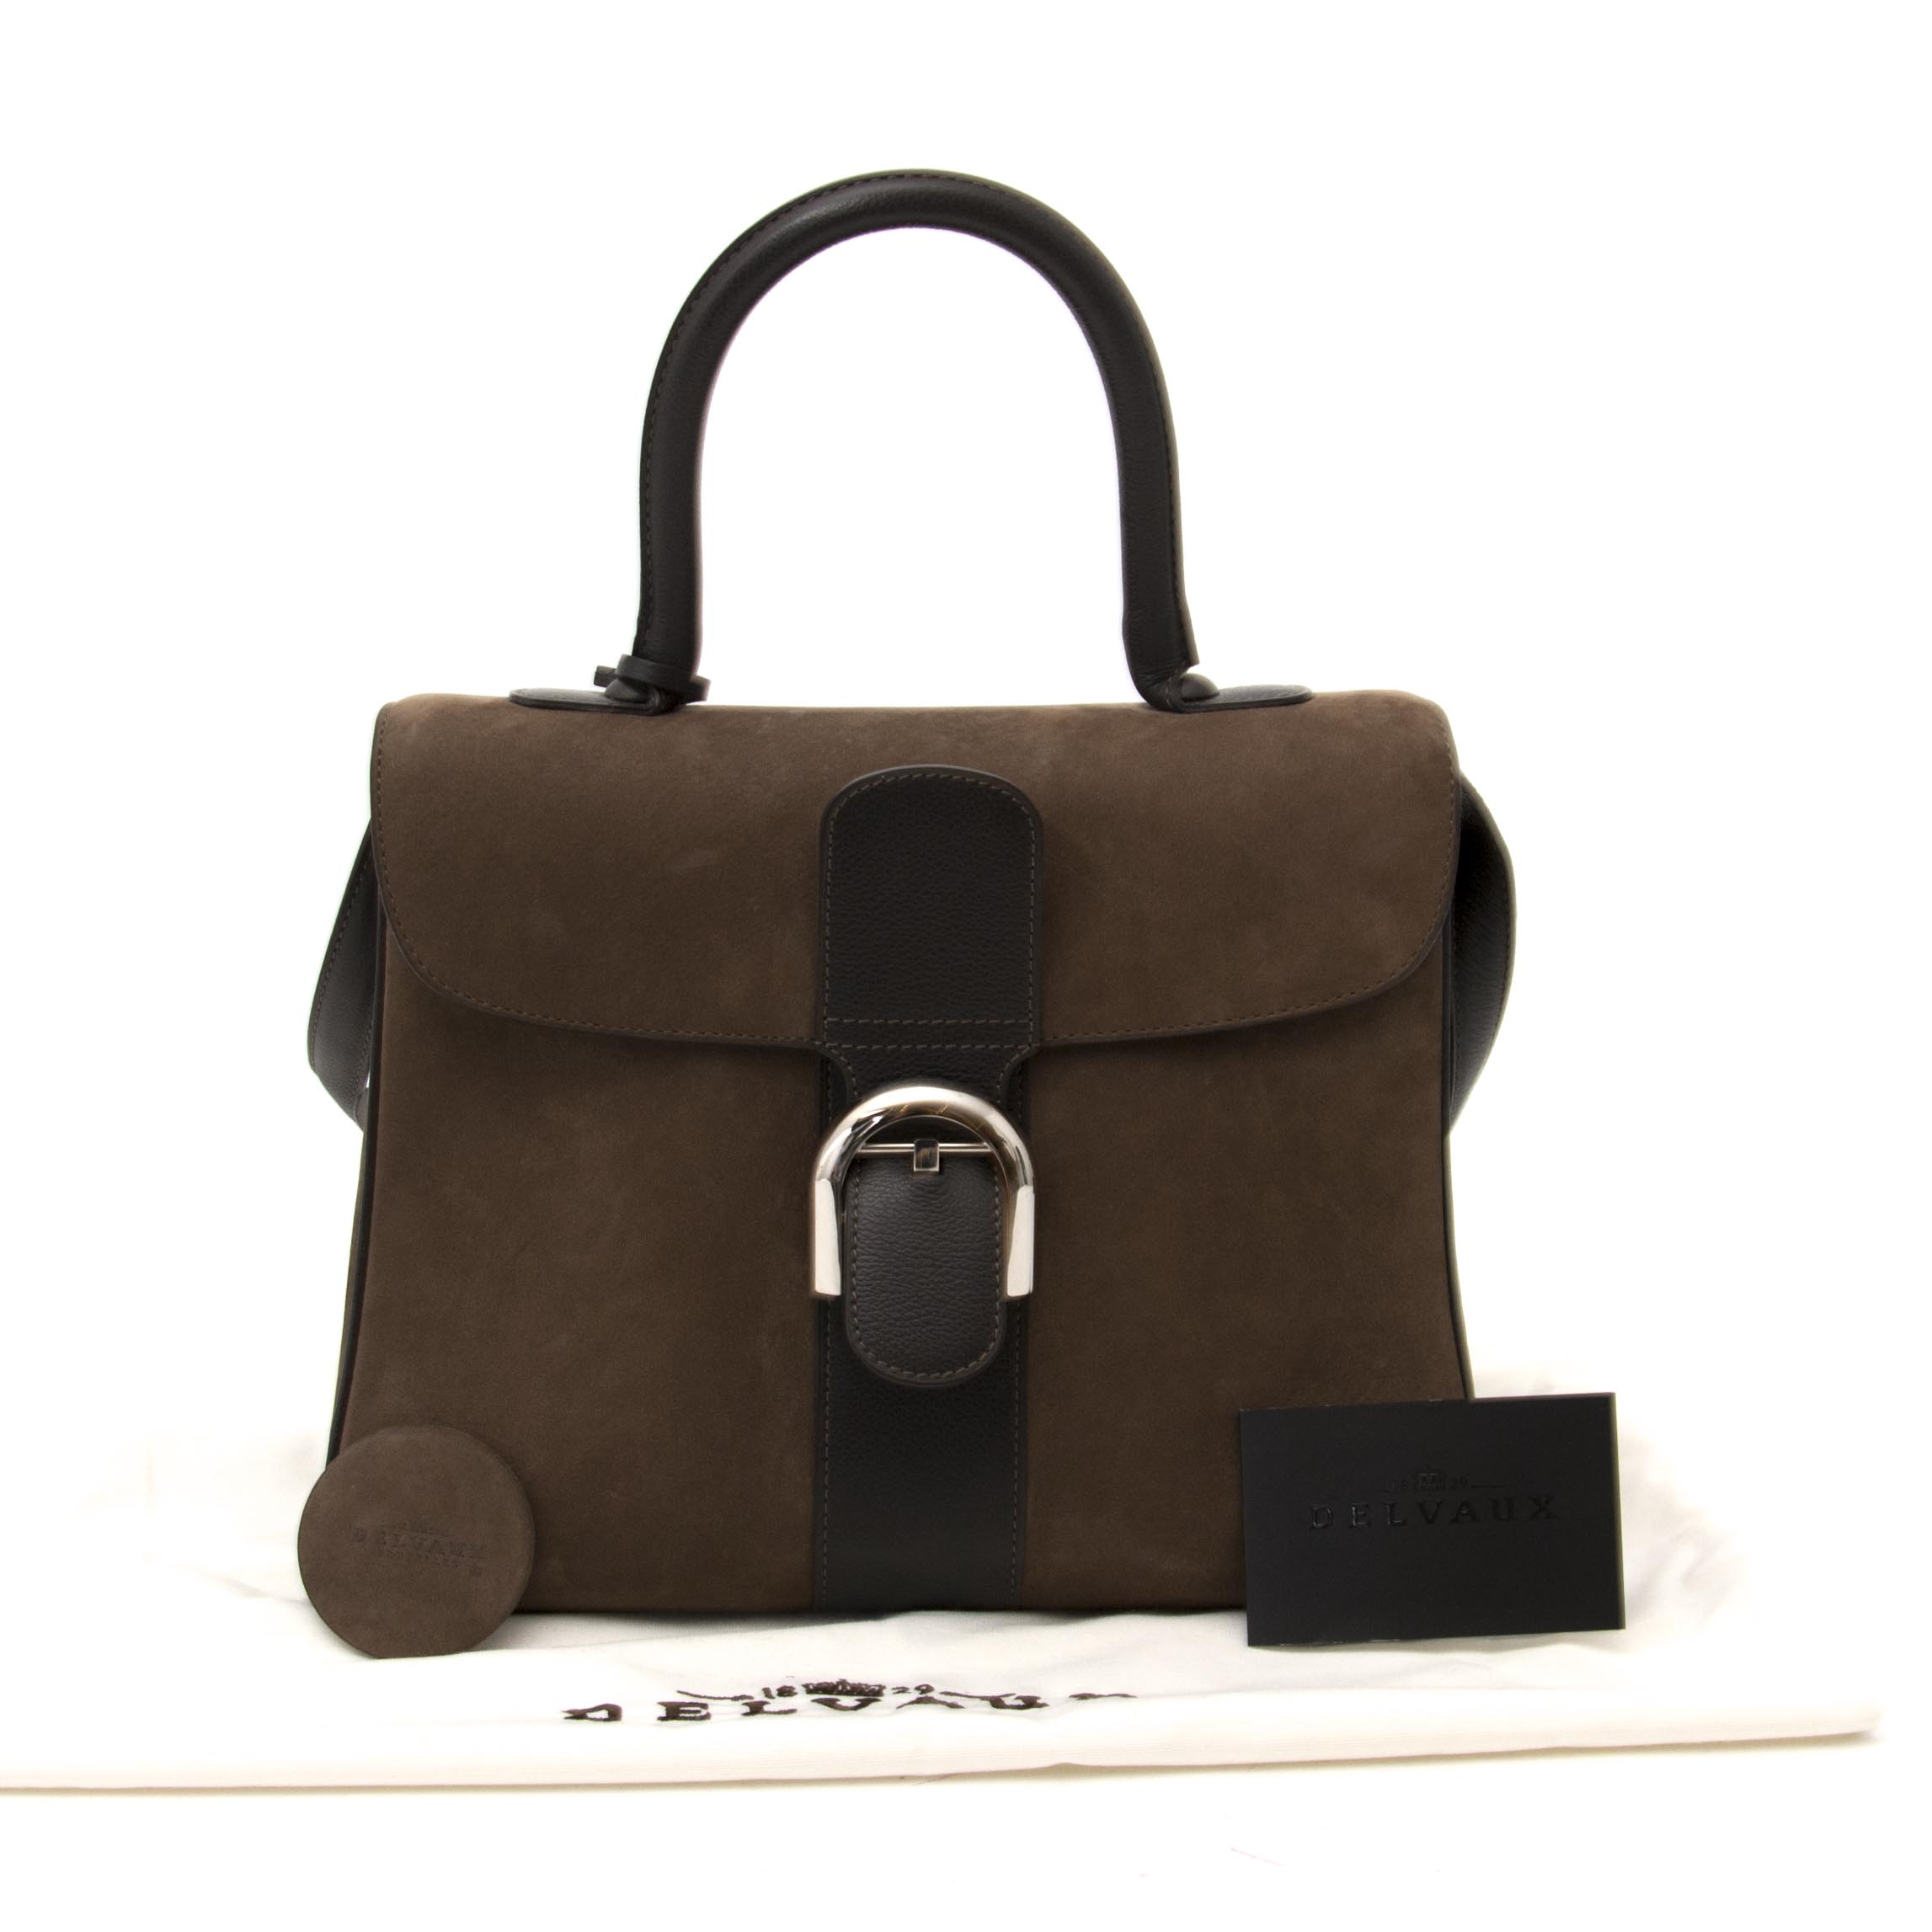 shop online aan de beste prijs shop safe Delvaux Brown Bicolor Brillant MM + Strap online at the best price